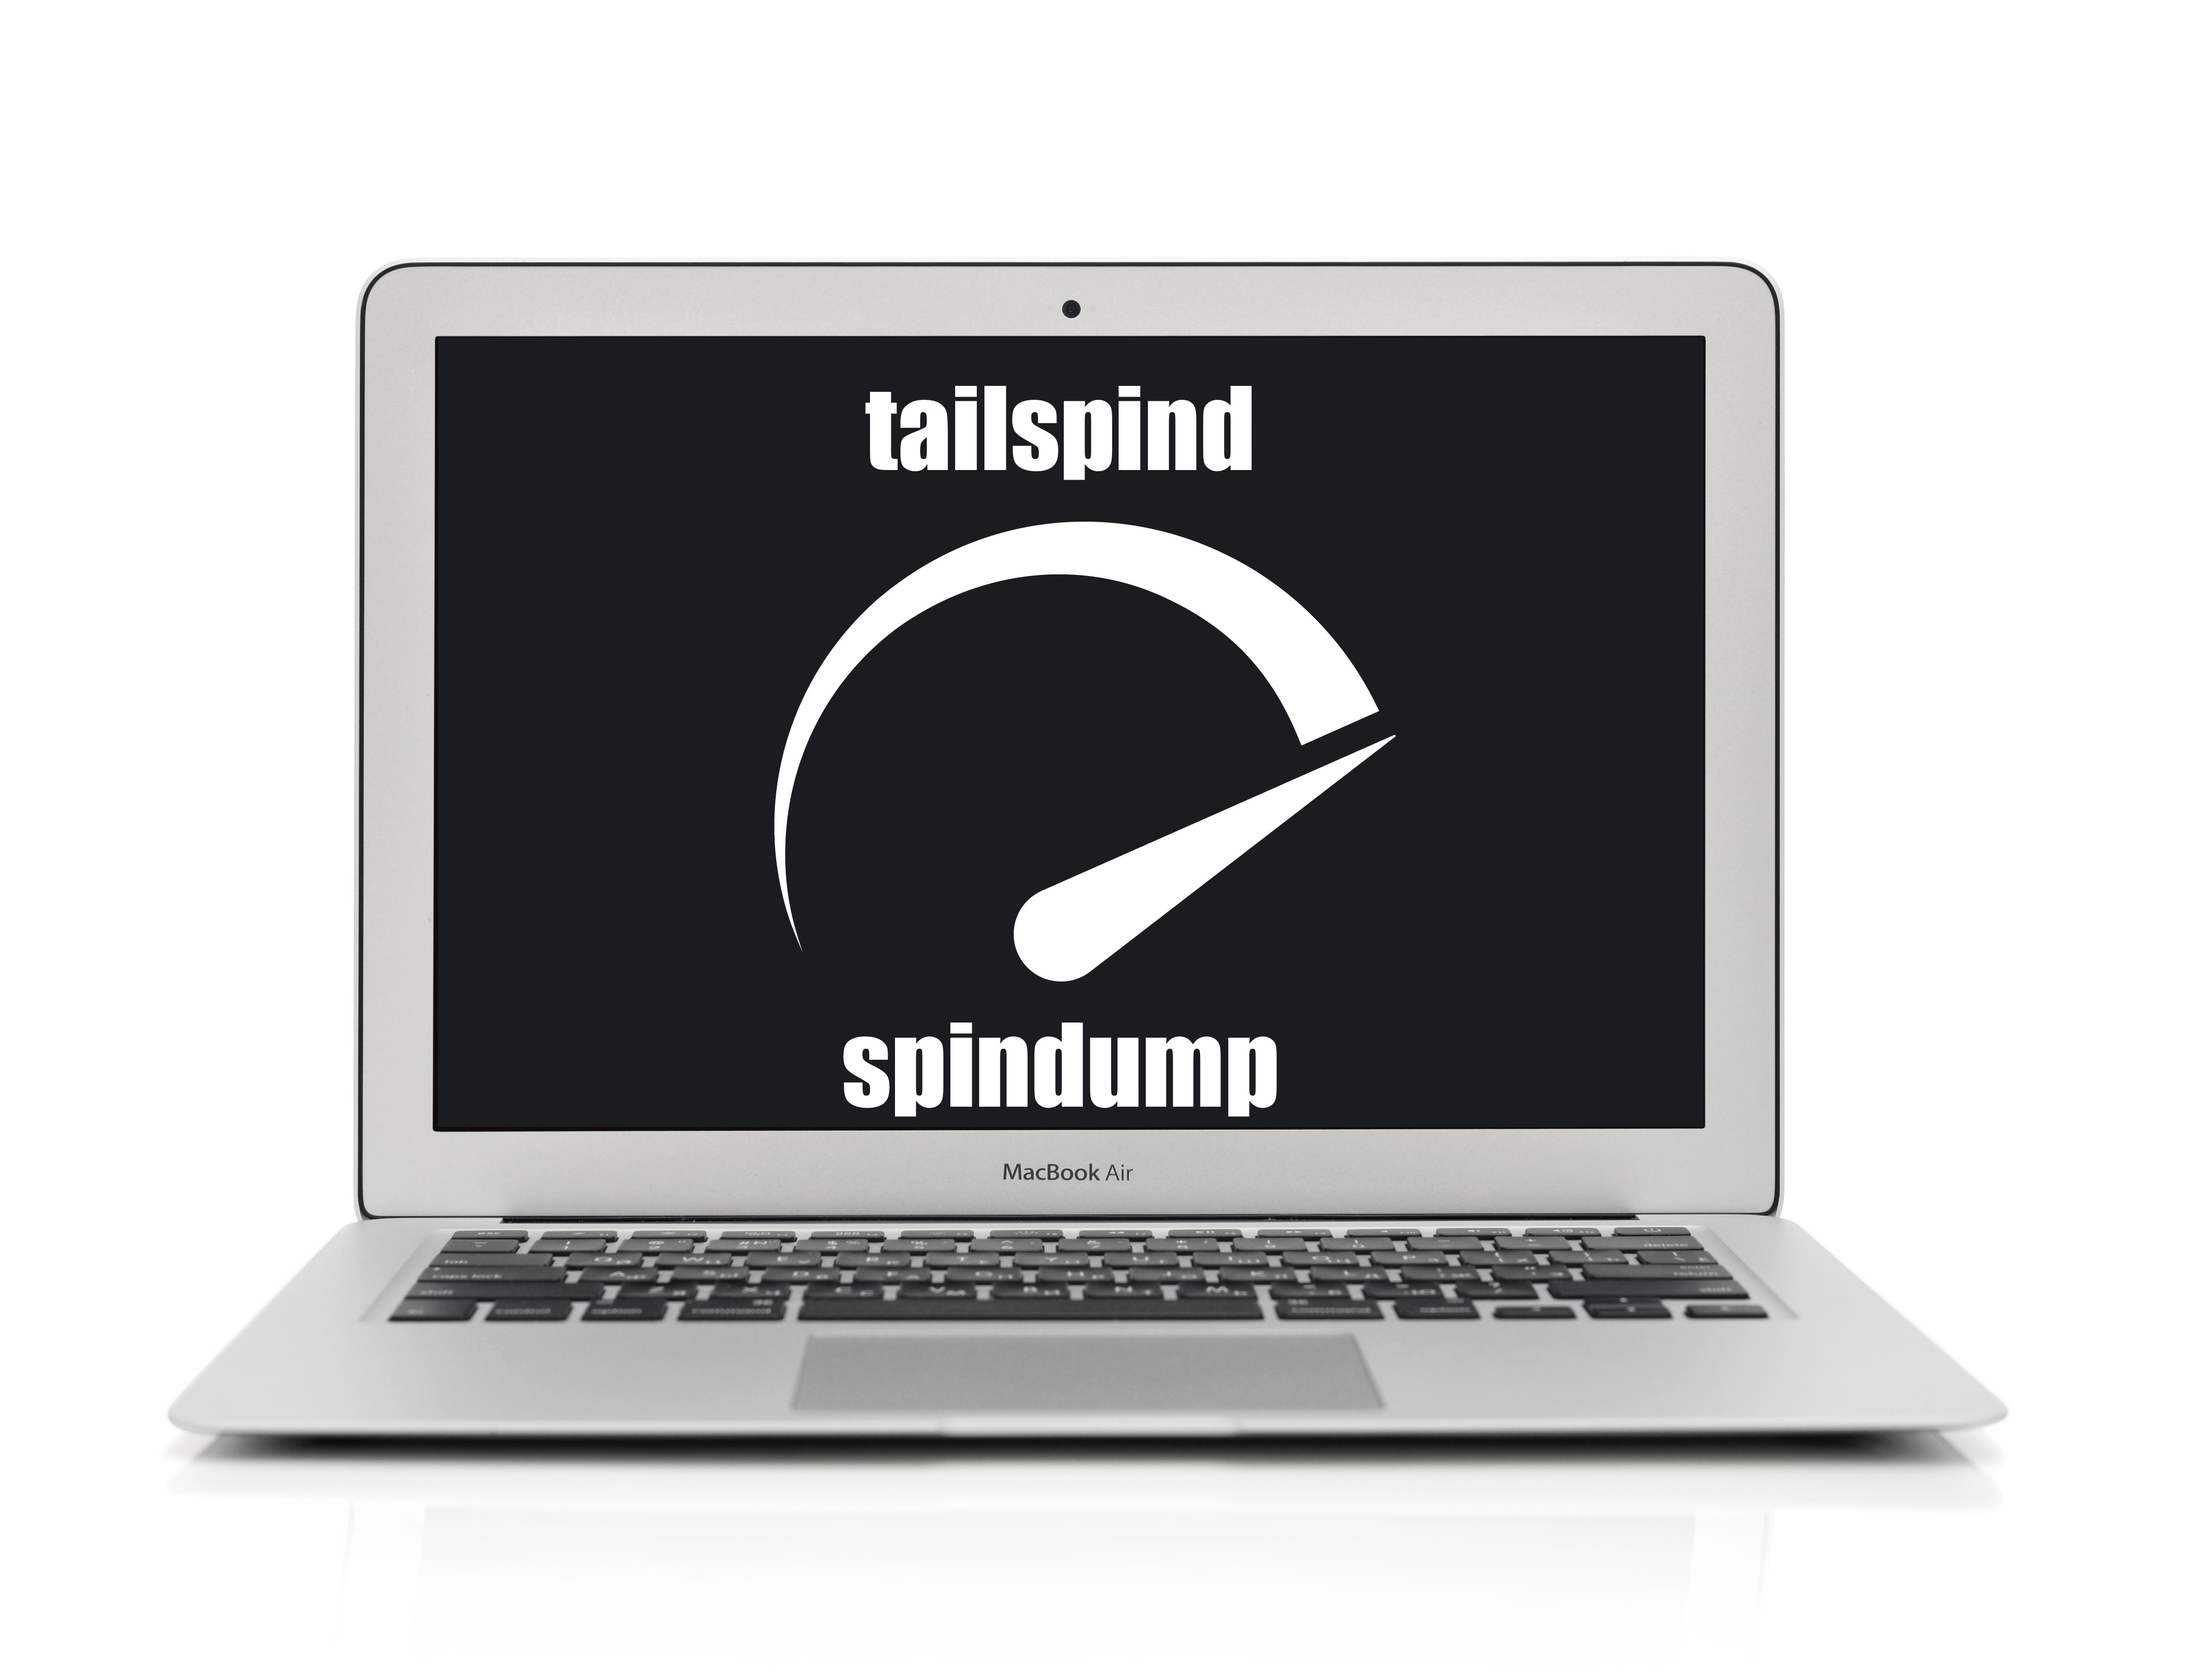 Disable tailspind and spindump to Speed Up your Mac - The